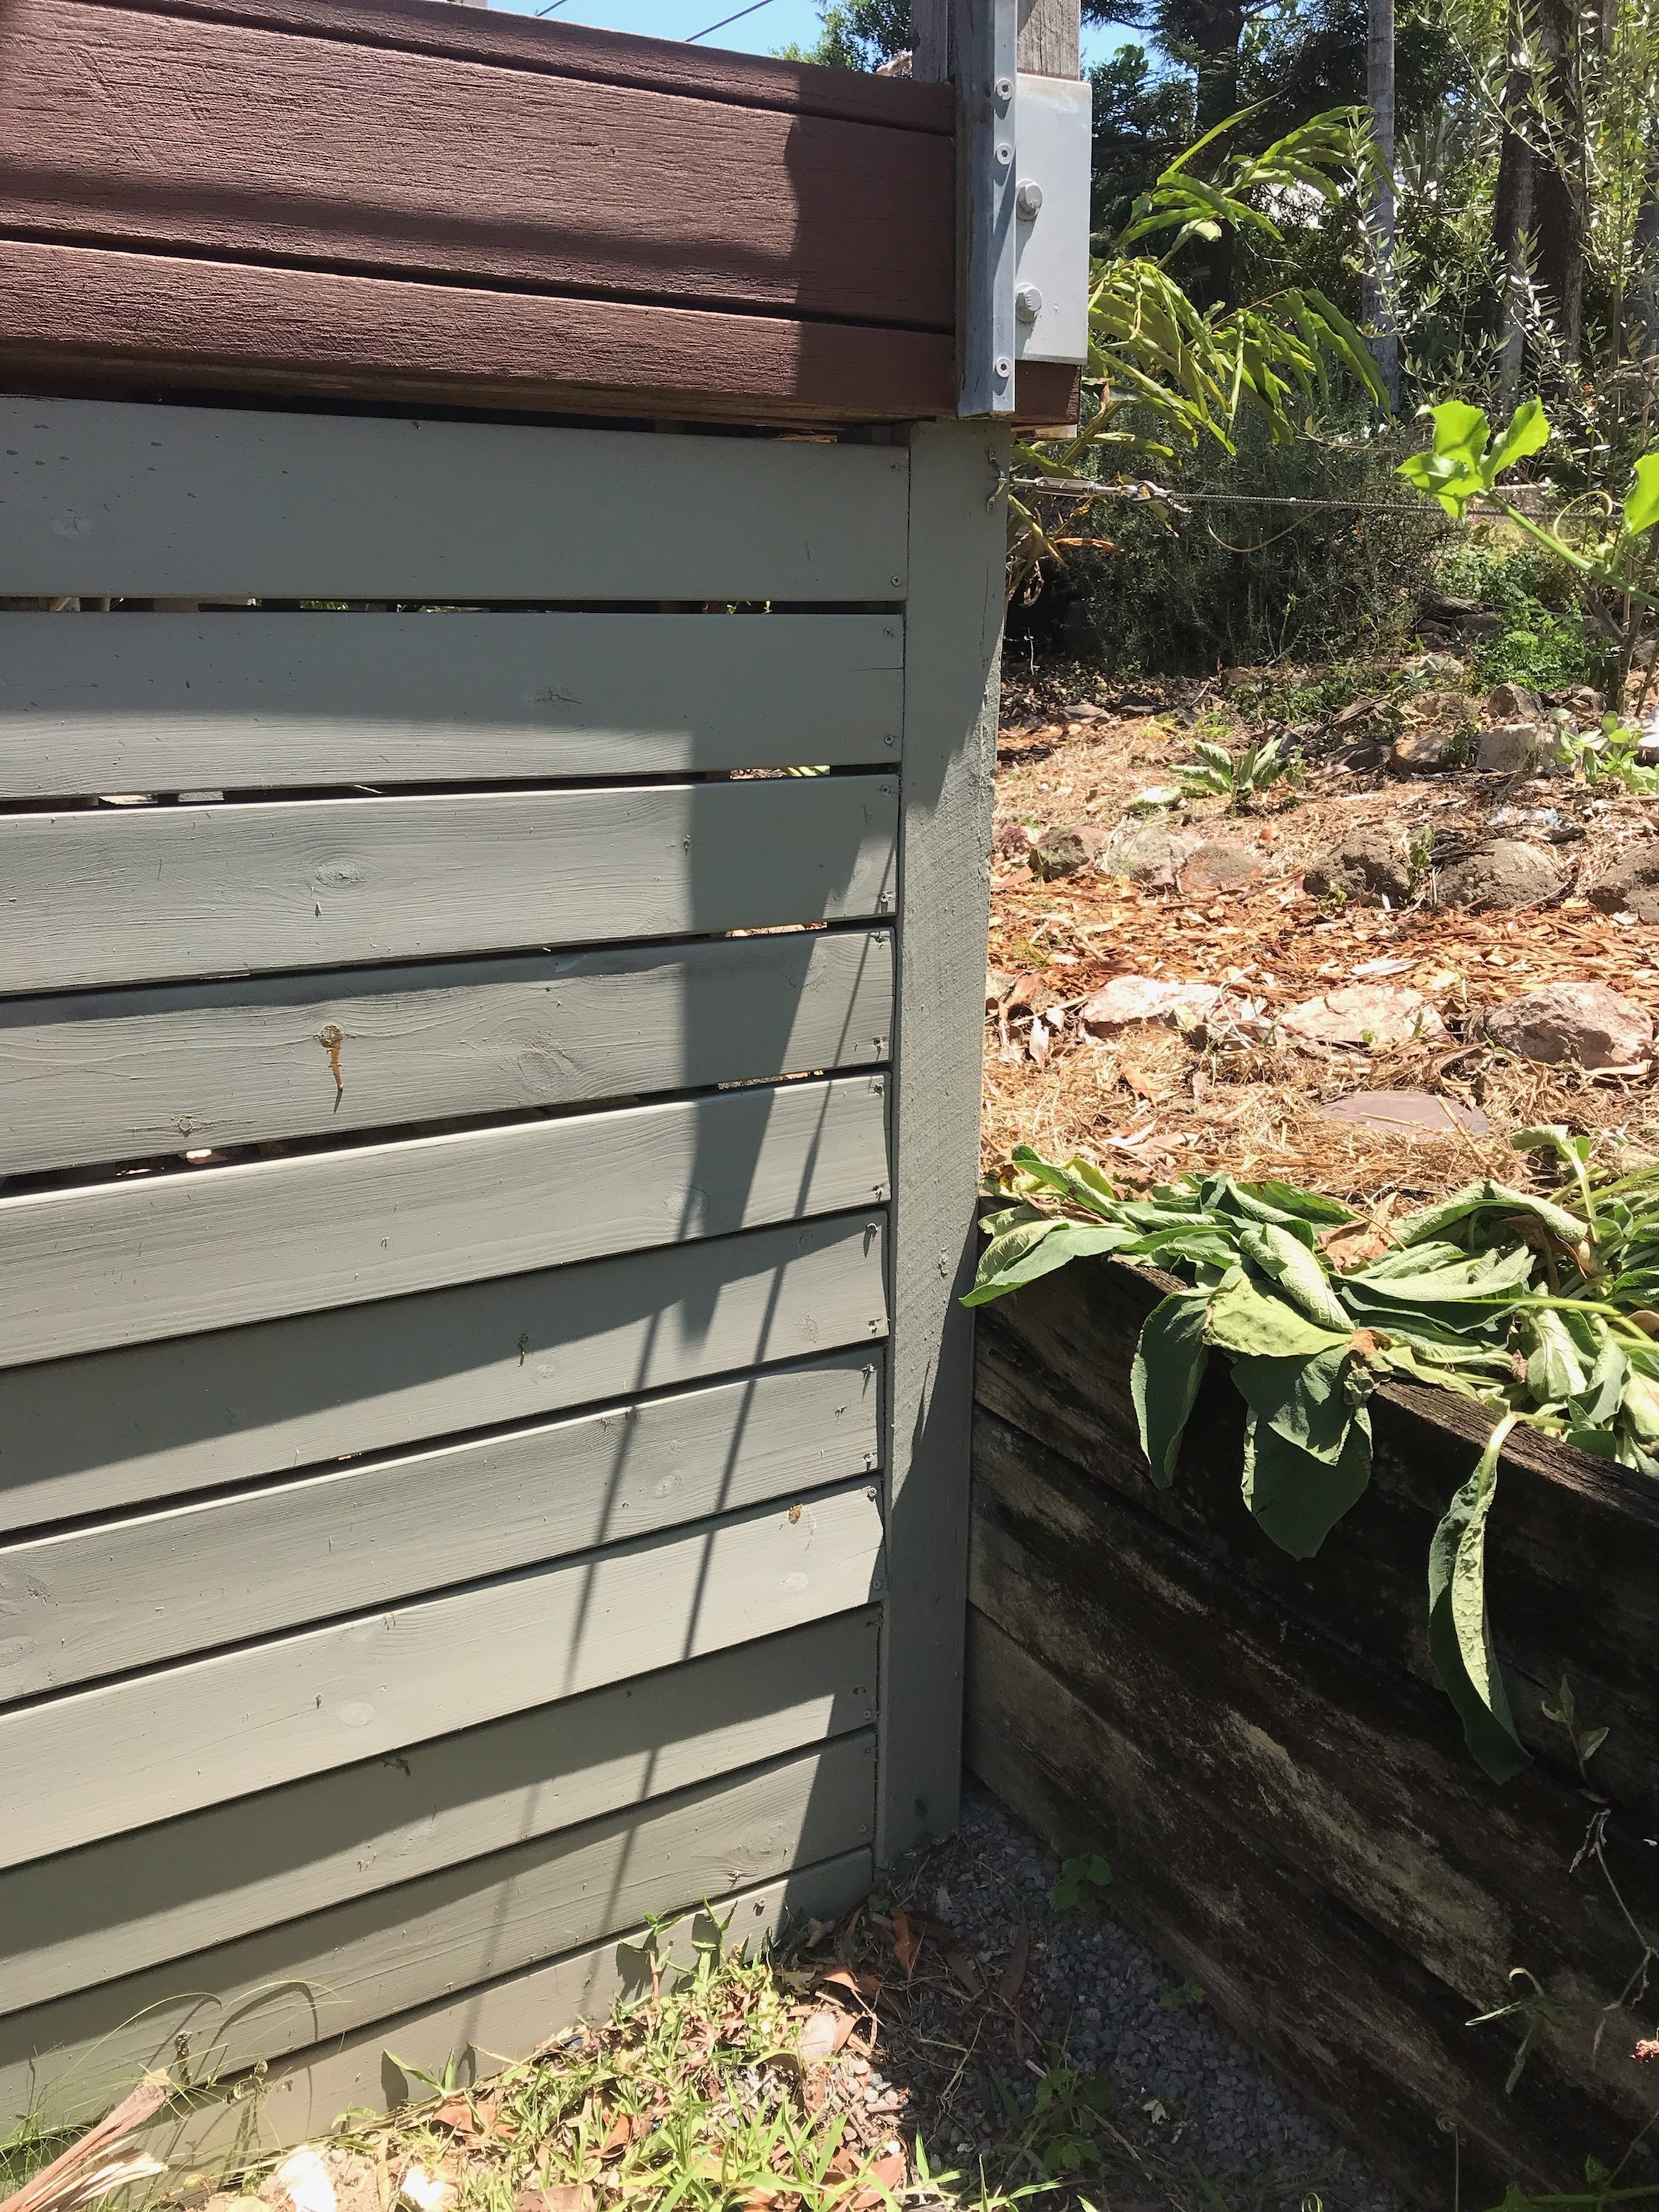 Shadow wall' providing conditions conducive to concealed termite entry to this home